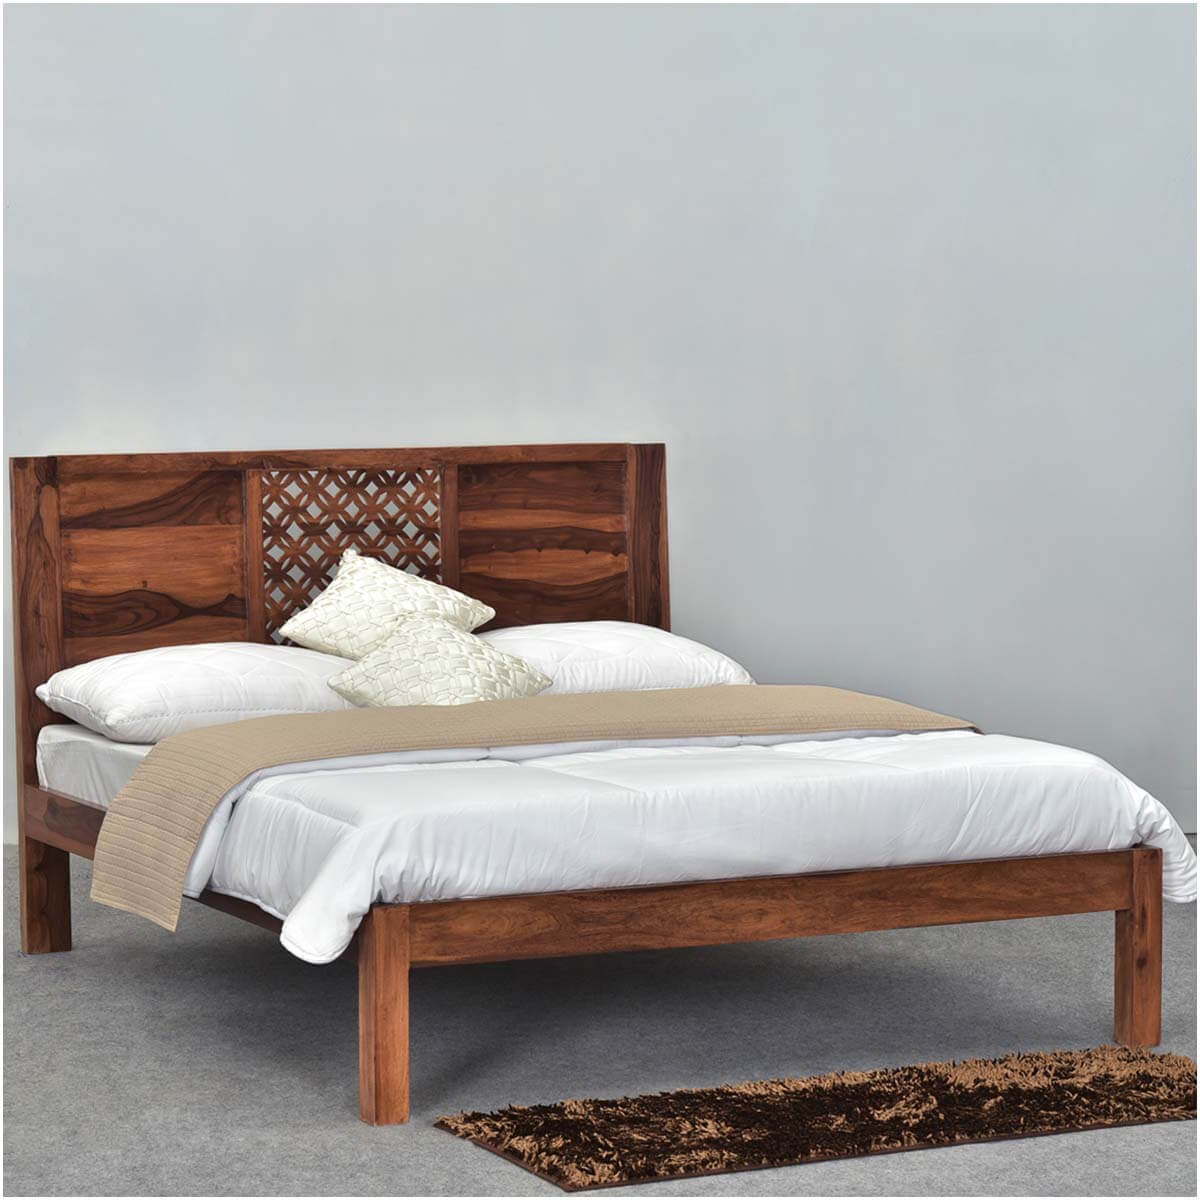 Diamond lattice solid wood rustic king size platform bed frame Rustic bed frames